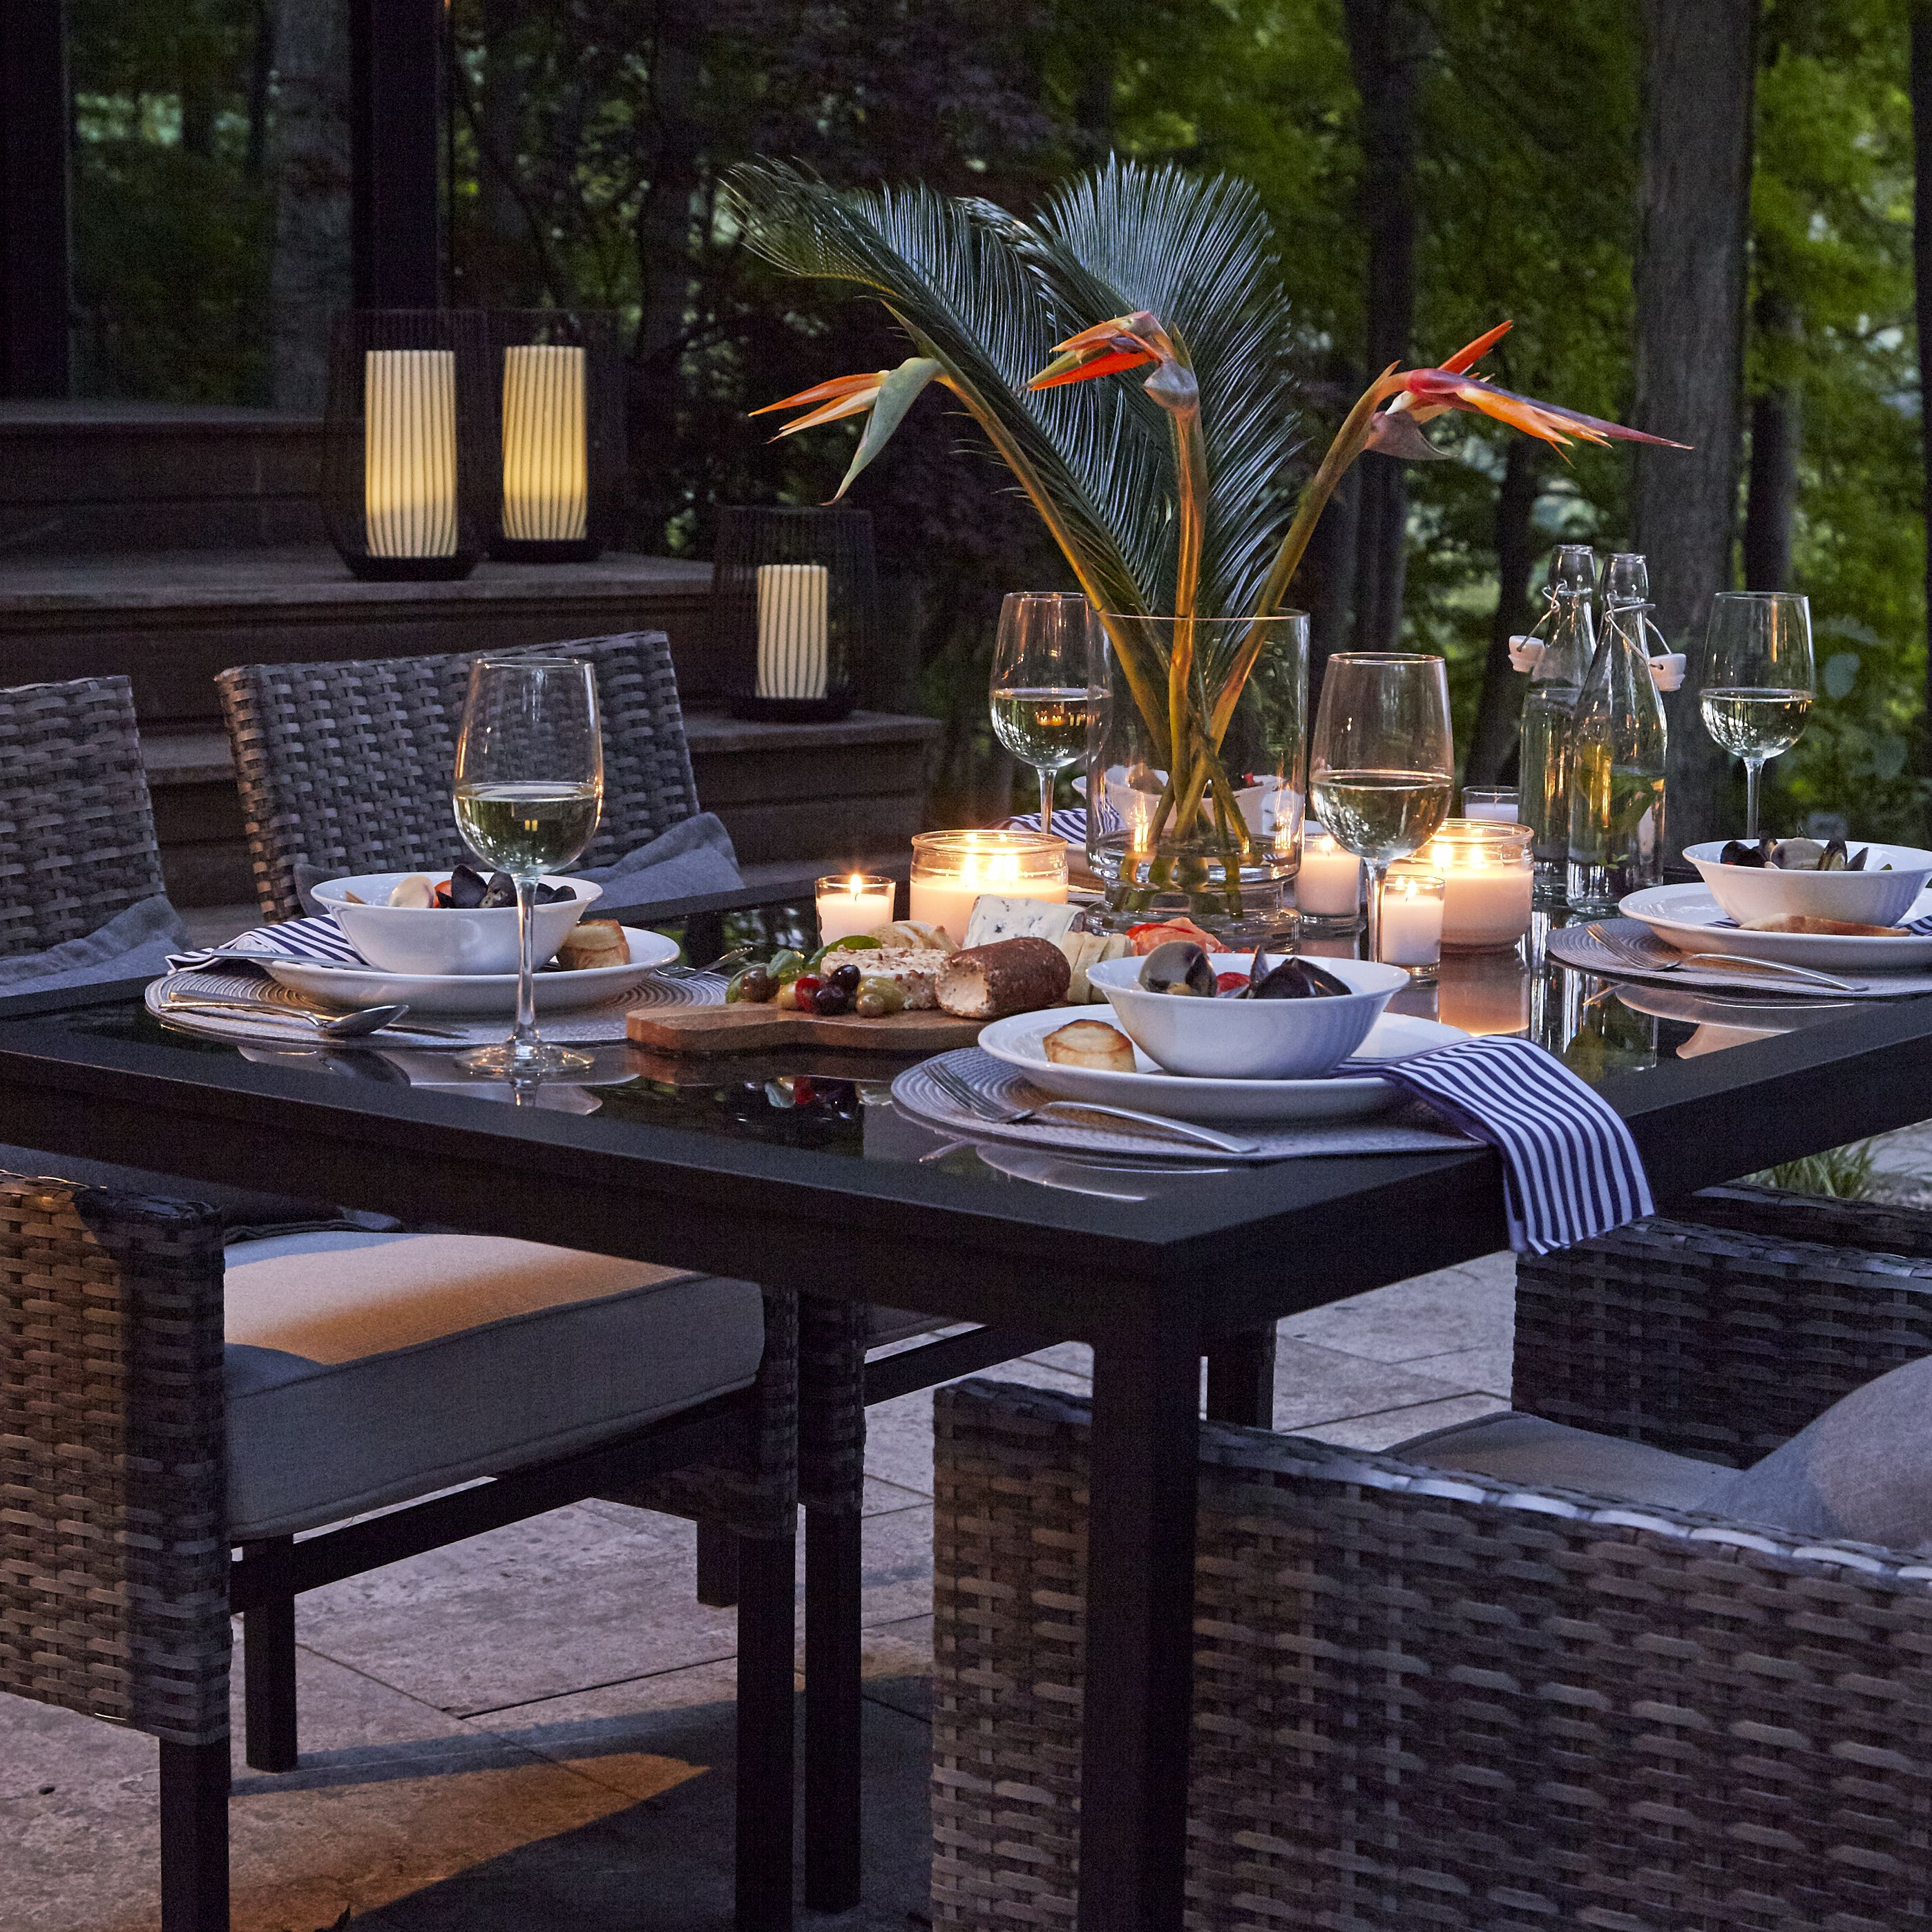 Outdoor Dinners Ftw Host In Style With The Sarasota Dining Set